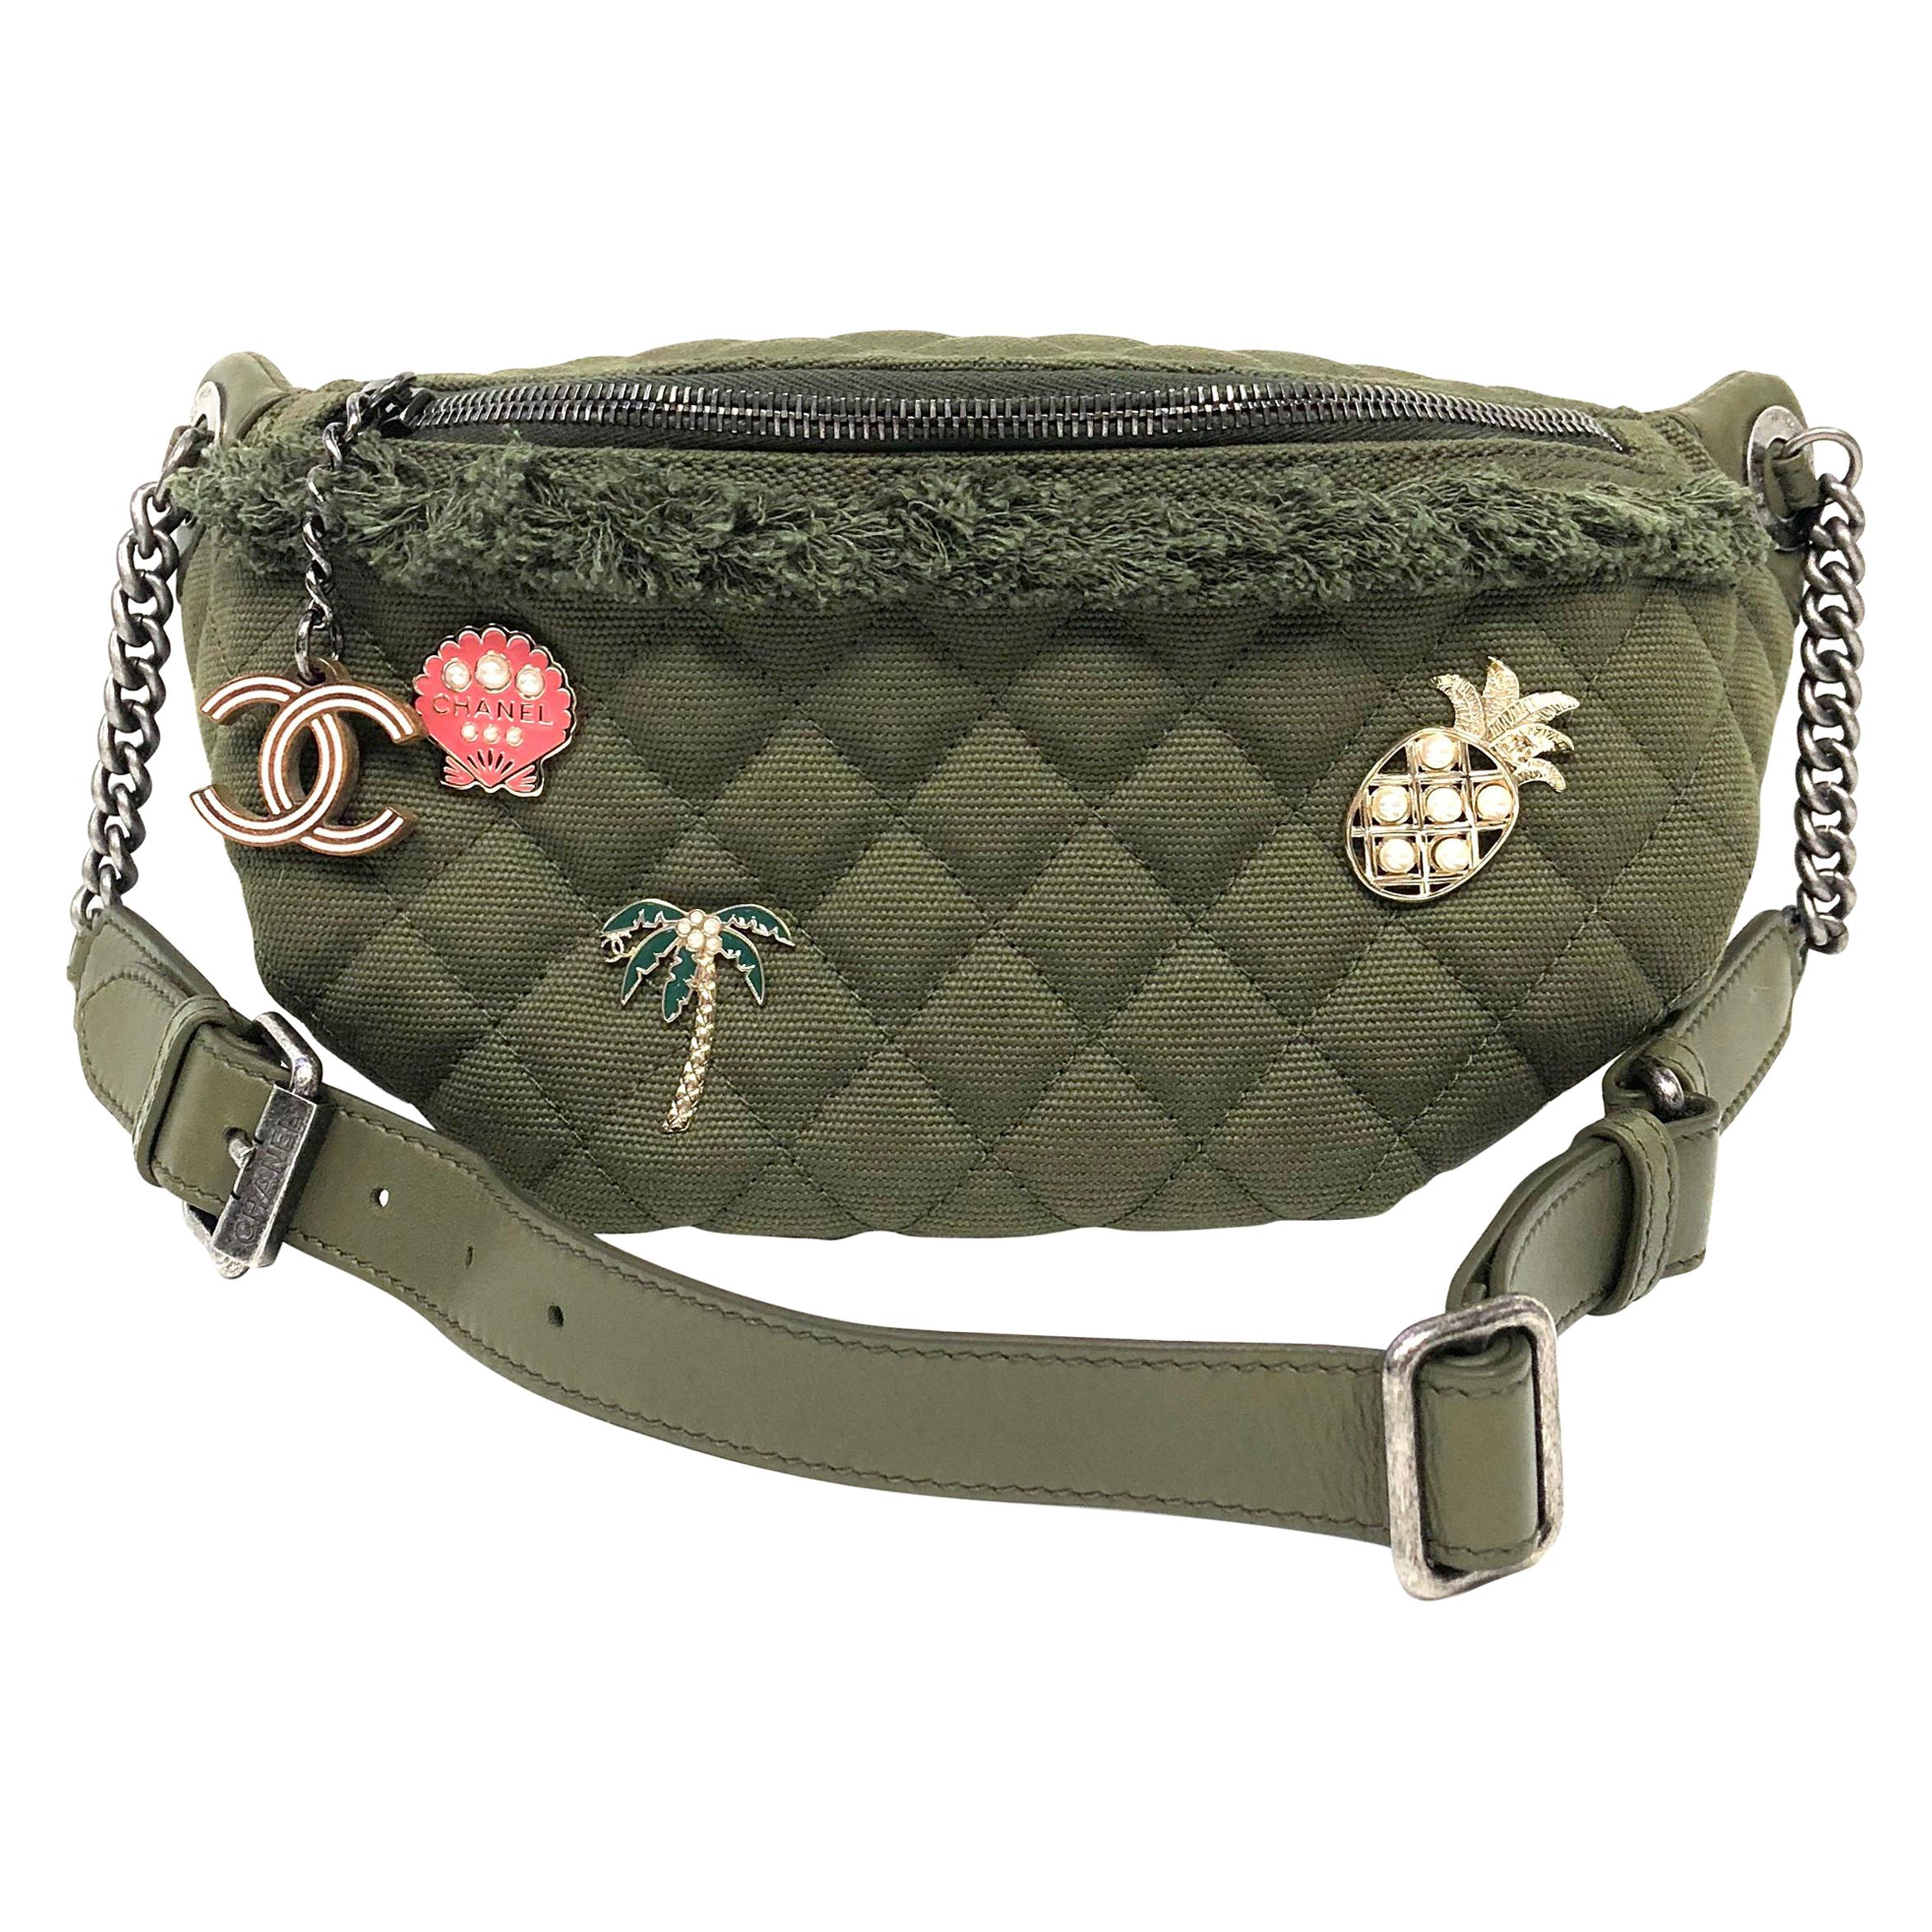 CHANEL Cruise 2017 Quilted Coco Cuba Charms Khaki Waist Bag Fanny Pack at  1stdibs 85685cb21a345